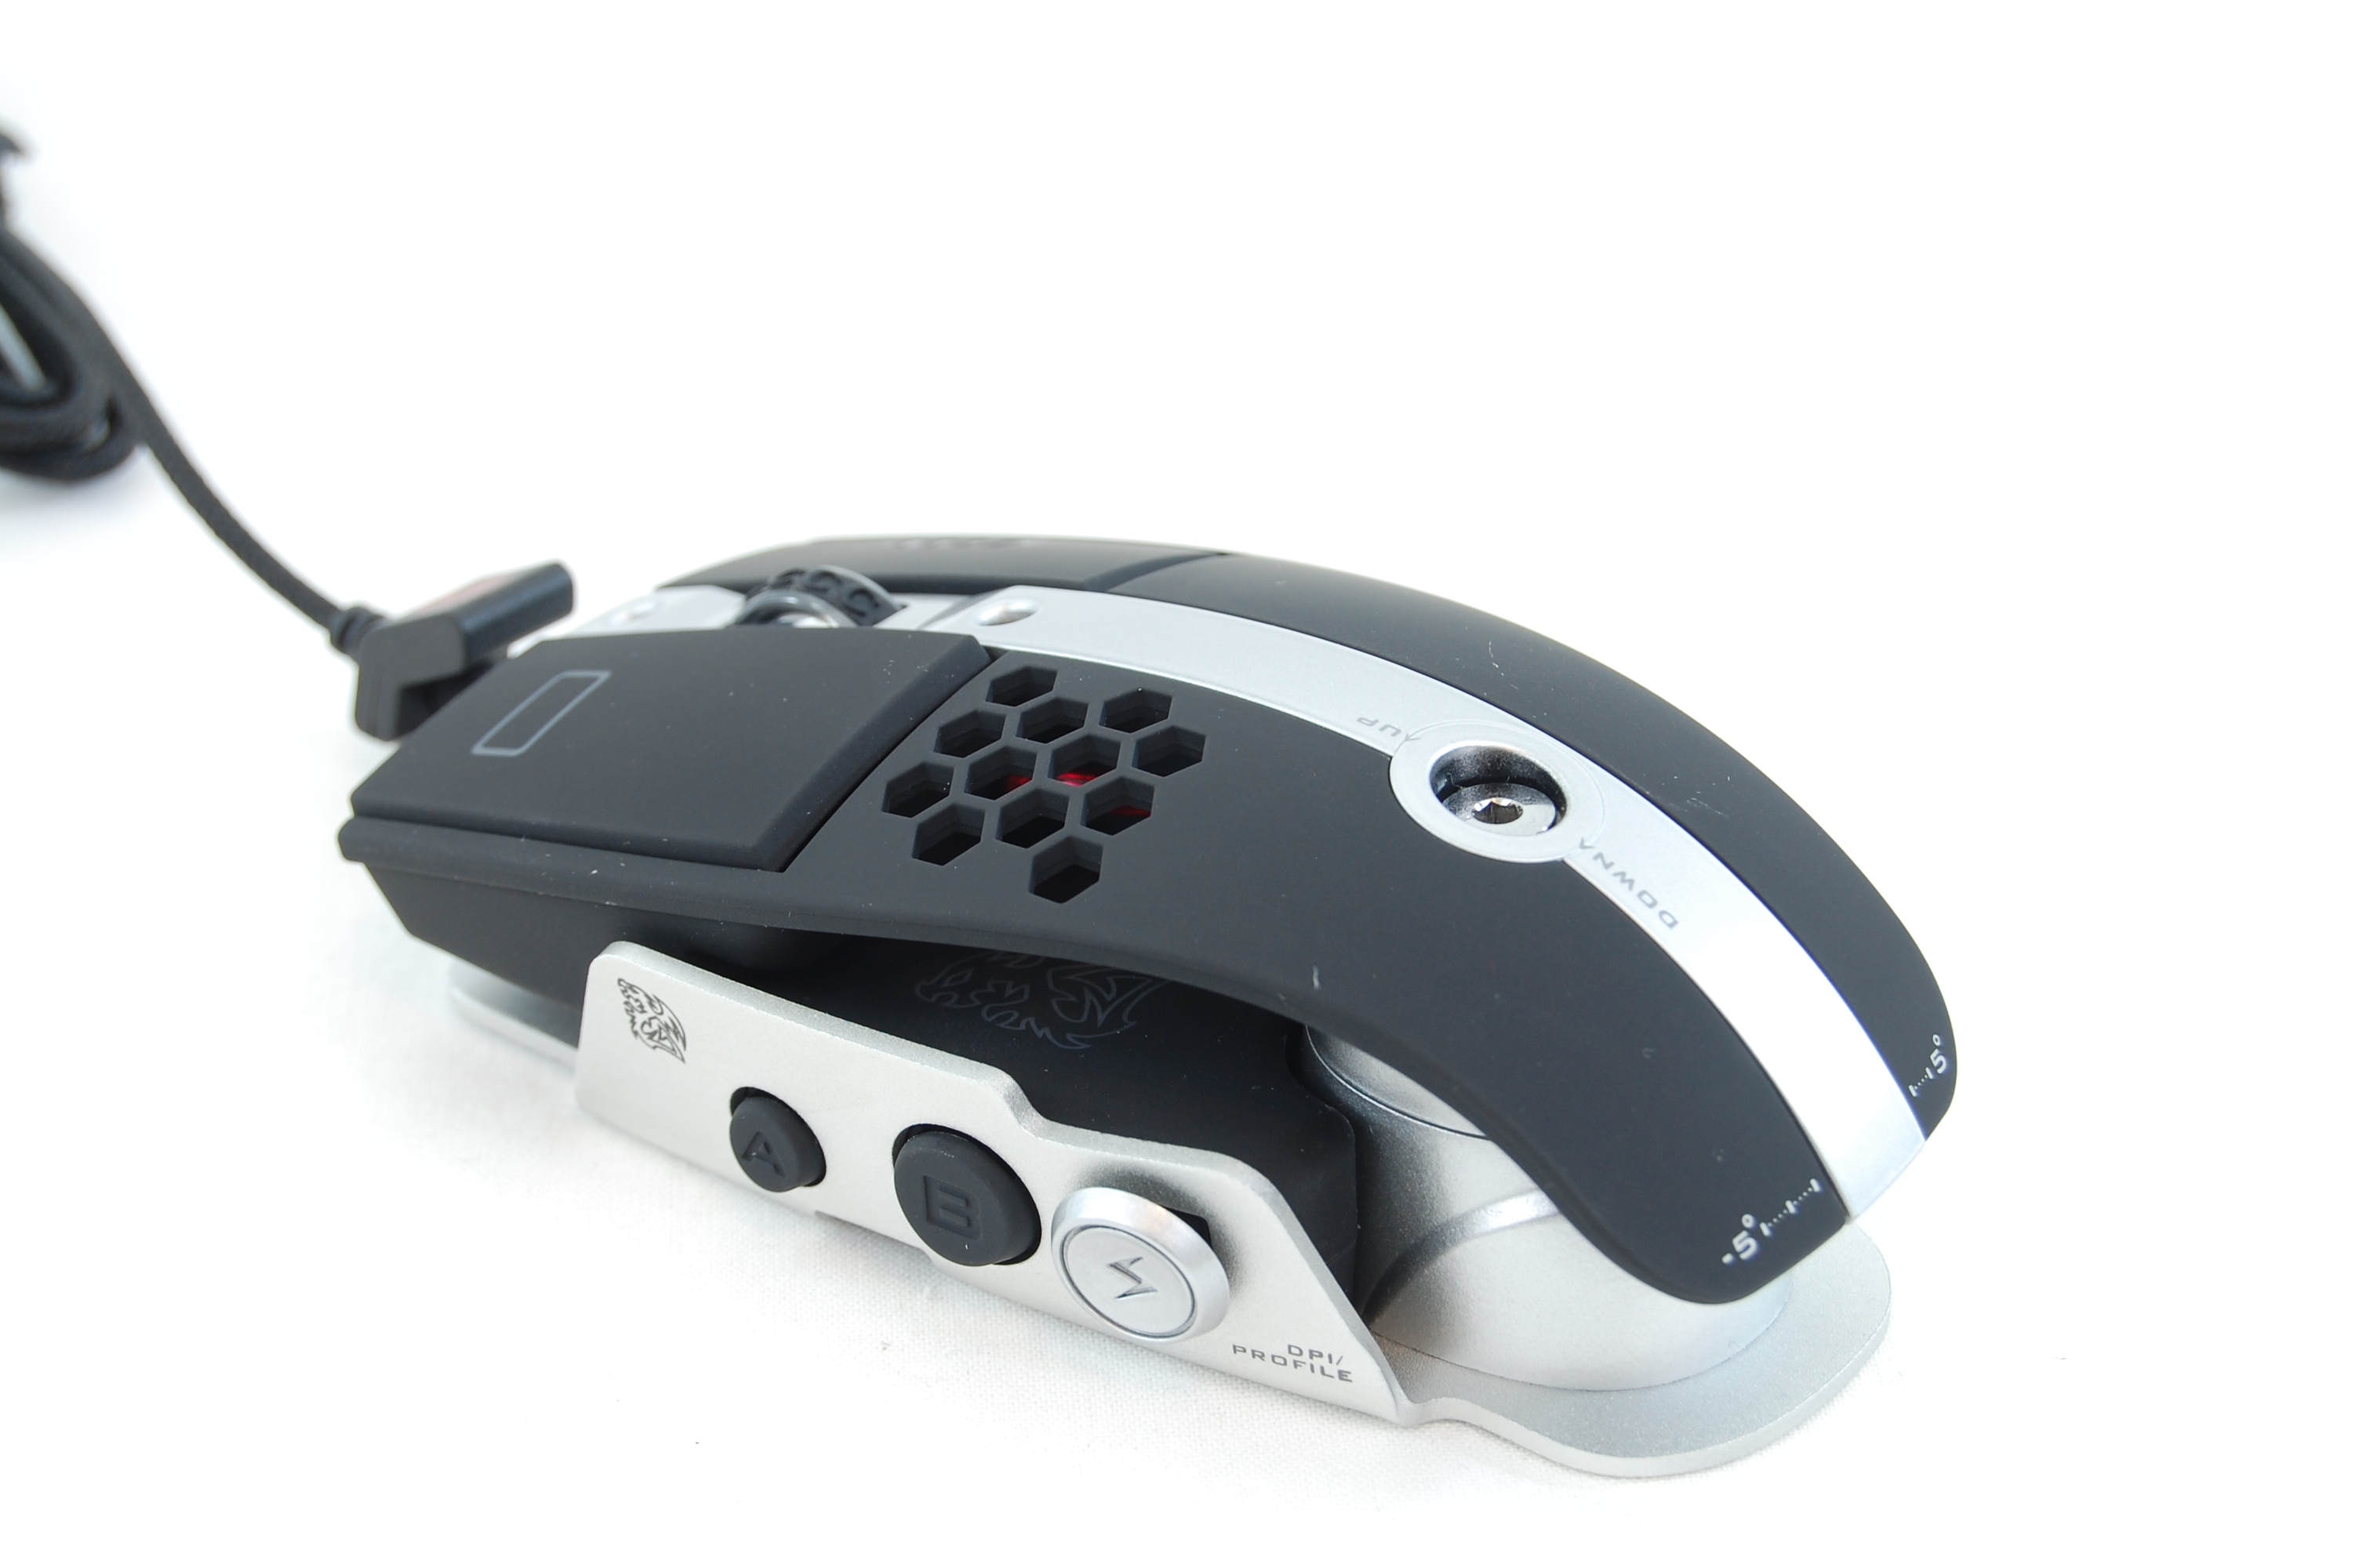 Thermaltake Level 10 M Gaming Mouse Review Taller To Fit Bigger Hands